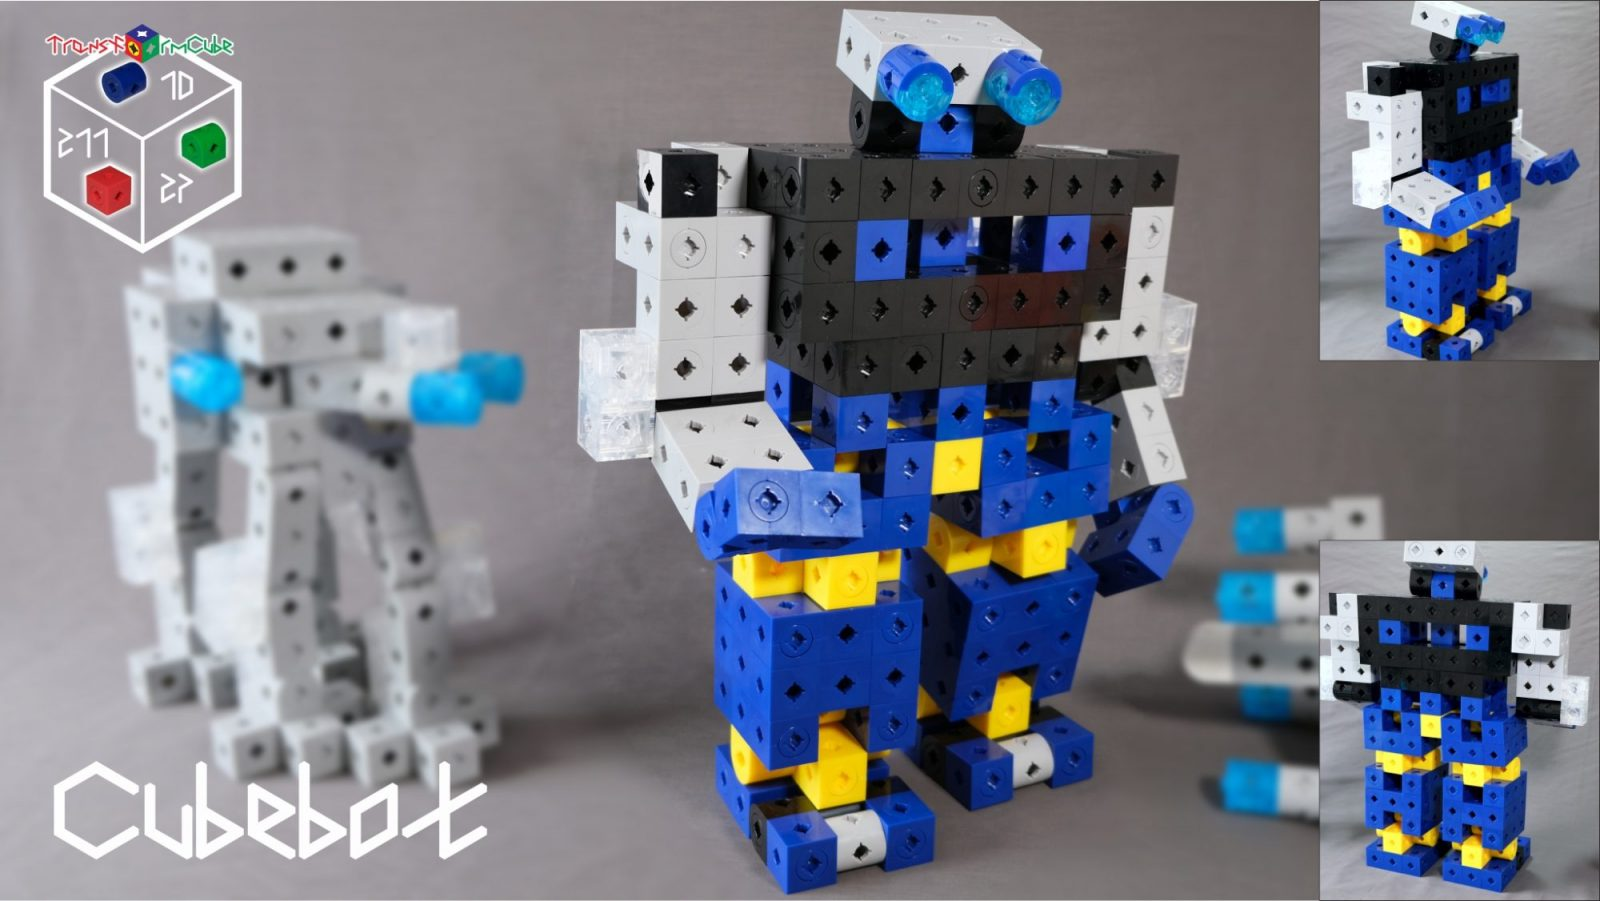 Cubebot - an evil humanroid robot